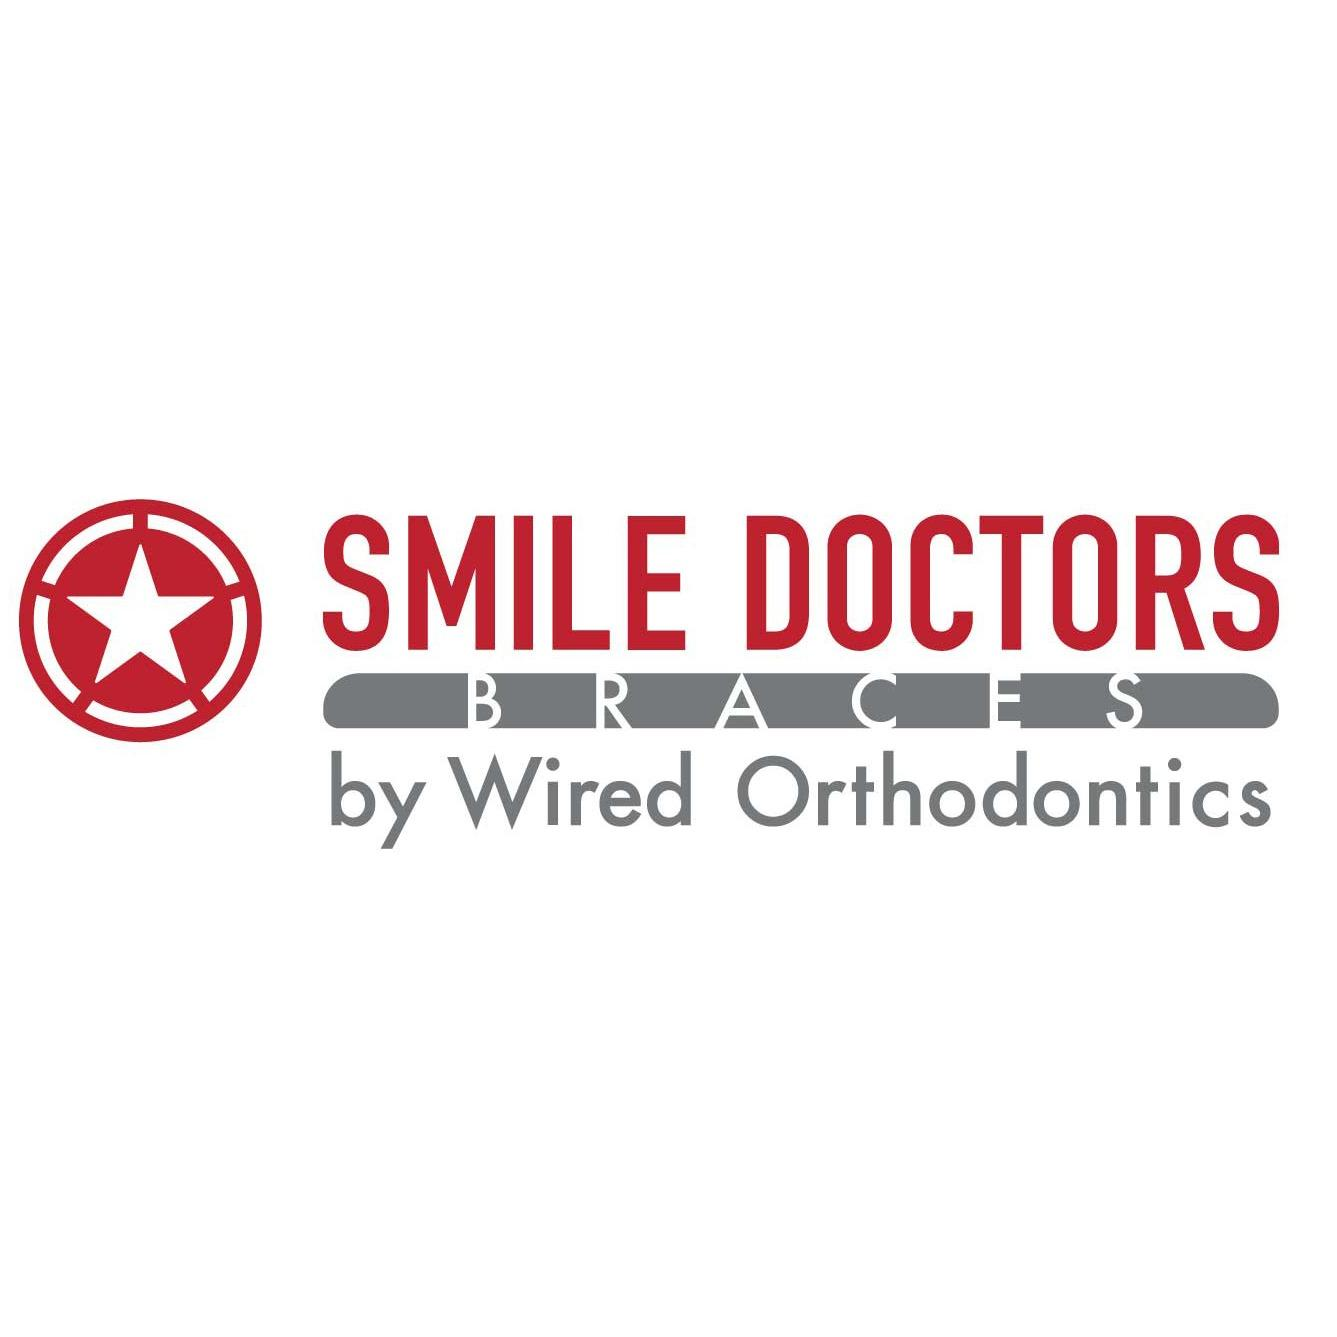 Smile Doctors Braces by Wired Orthodontics